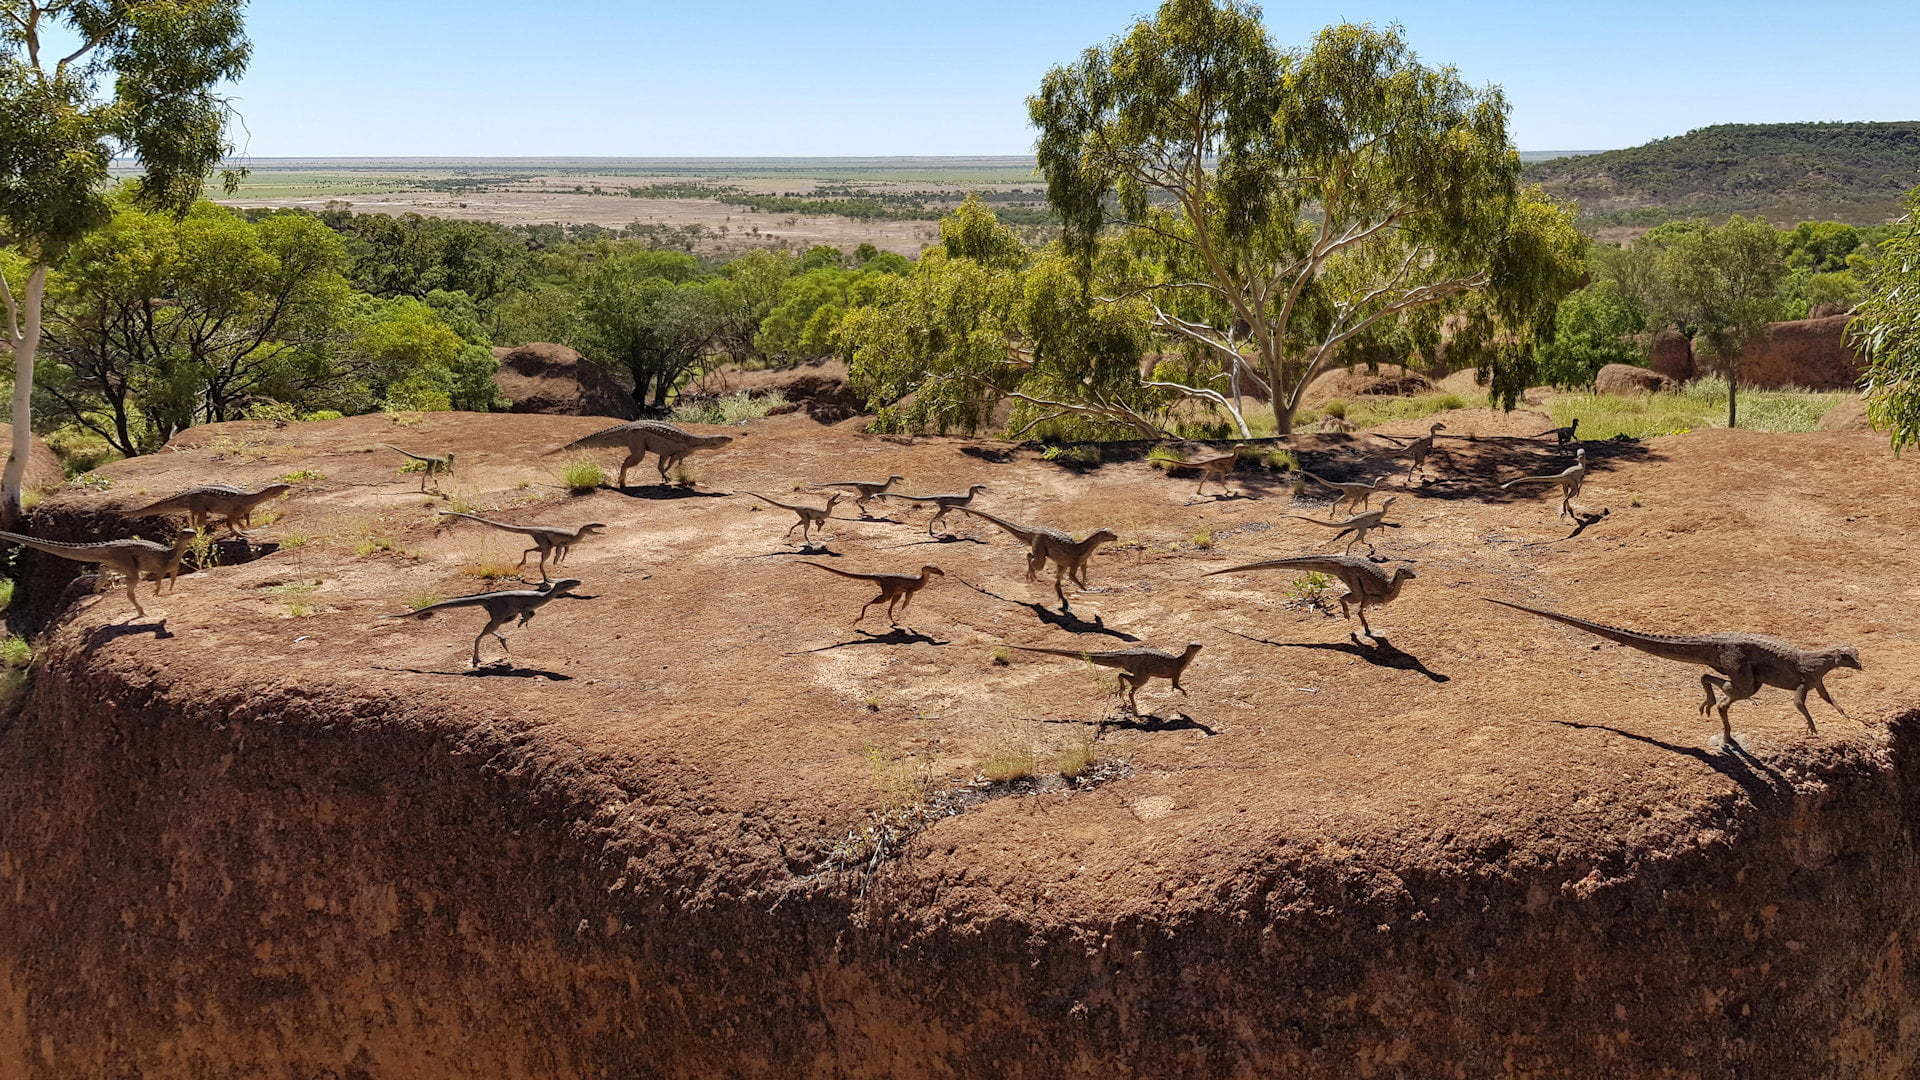 Small dinosaurs on a rock plateau in the outback, taken at the Australian Age Of Dinosaurs Museum